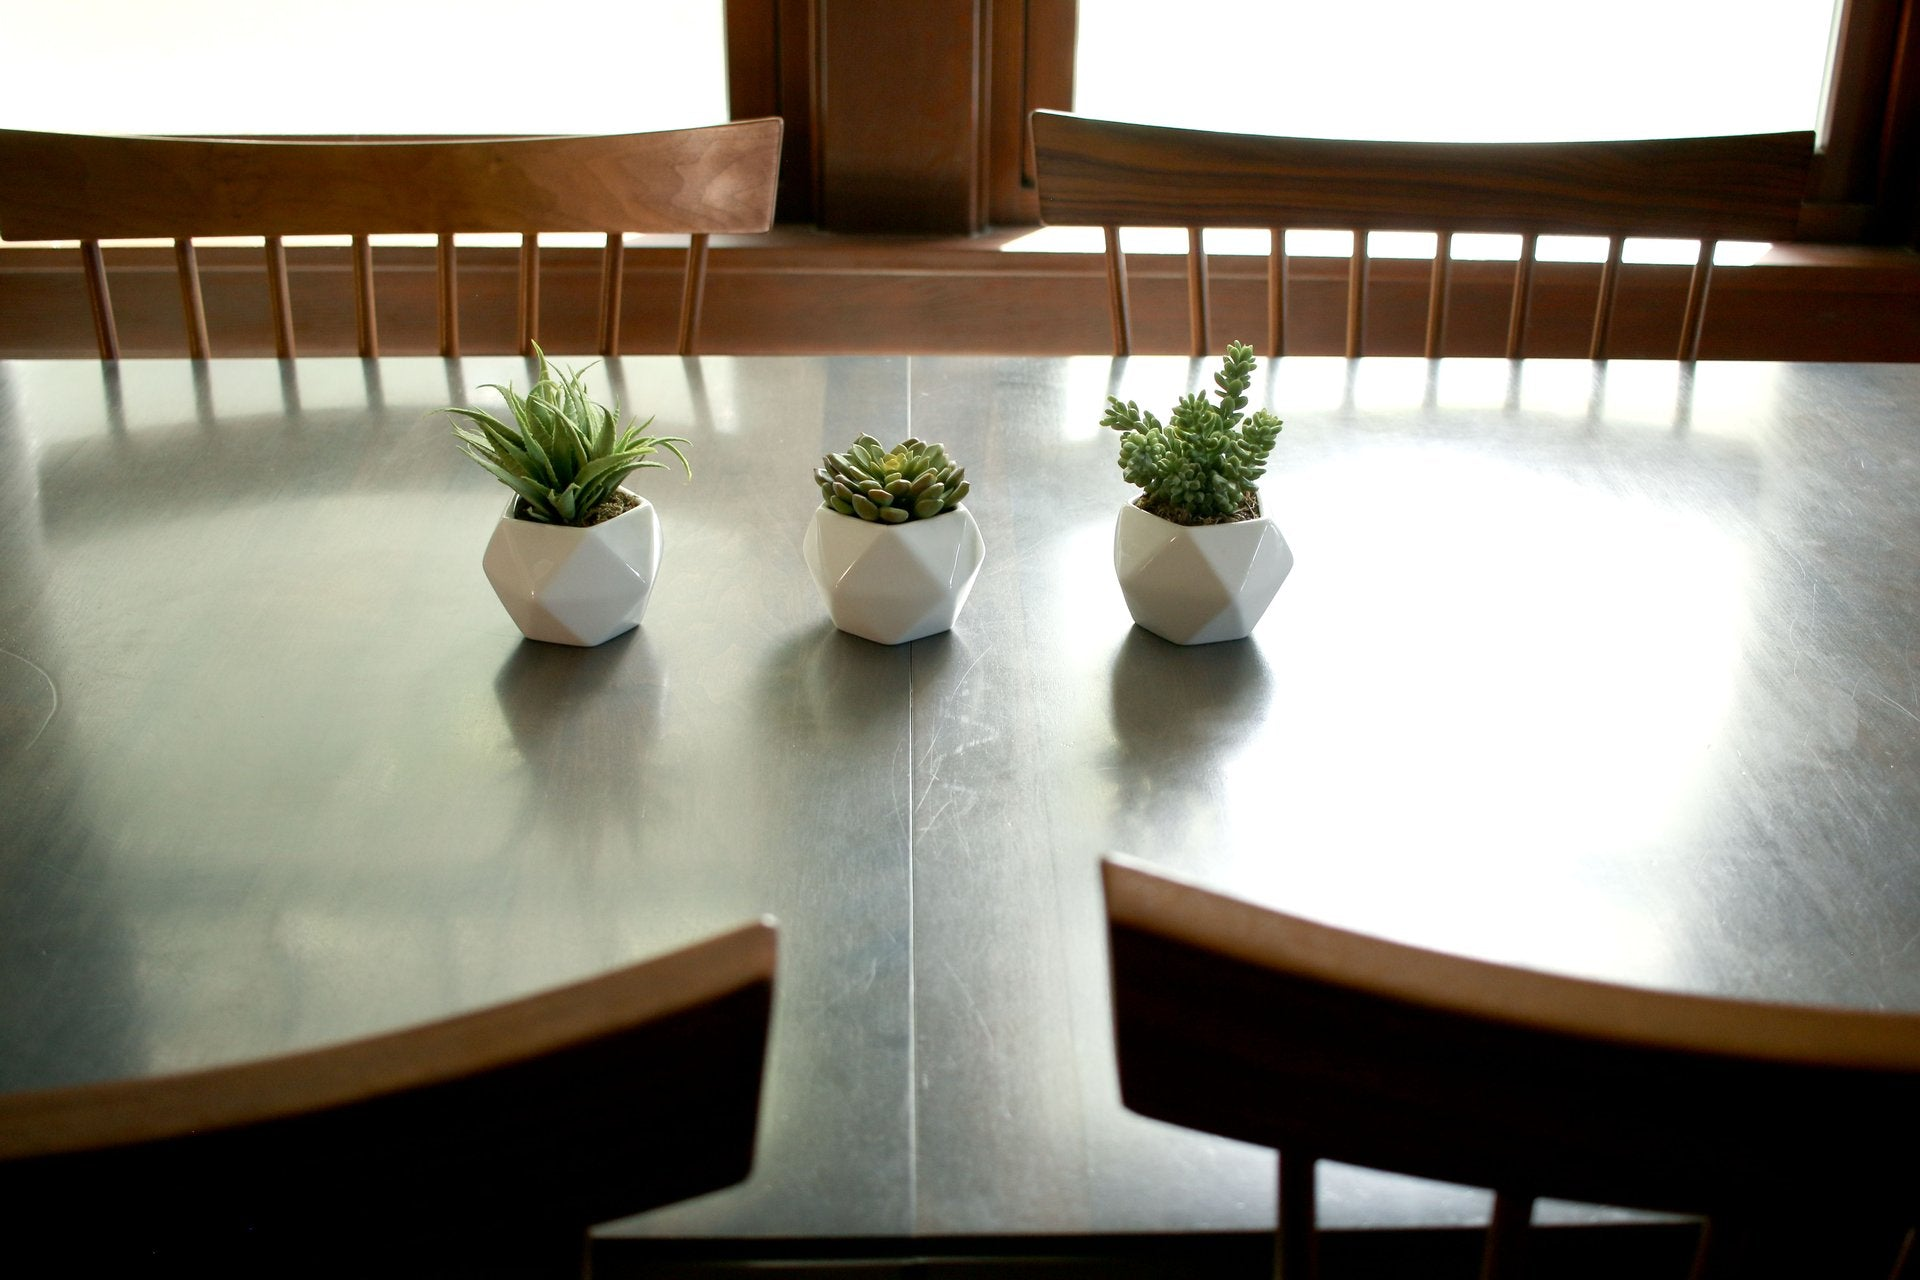 Beautiful Potted Plants, Vases, and Accents for Home and Business ...